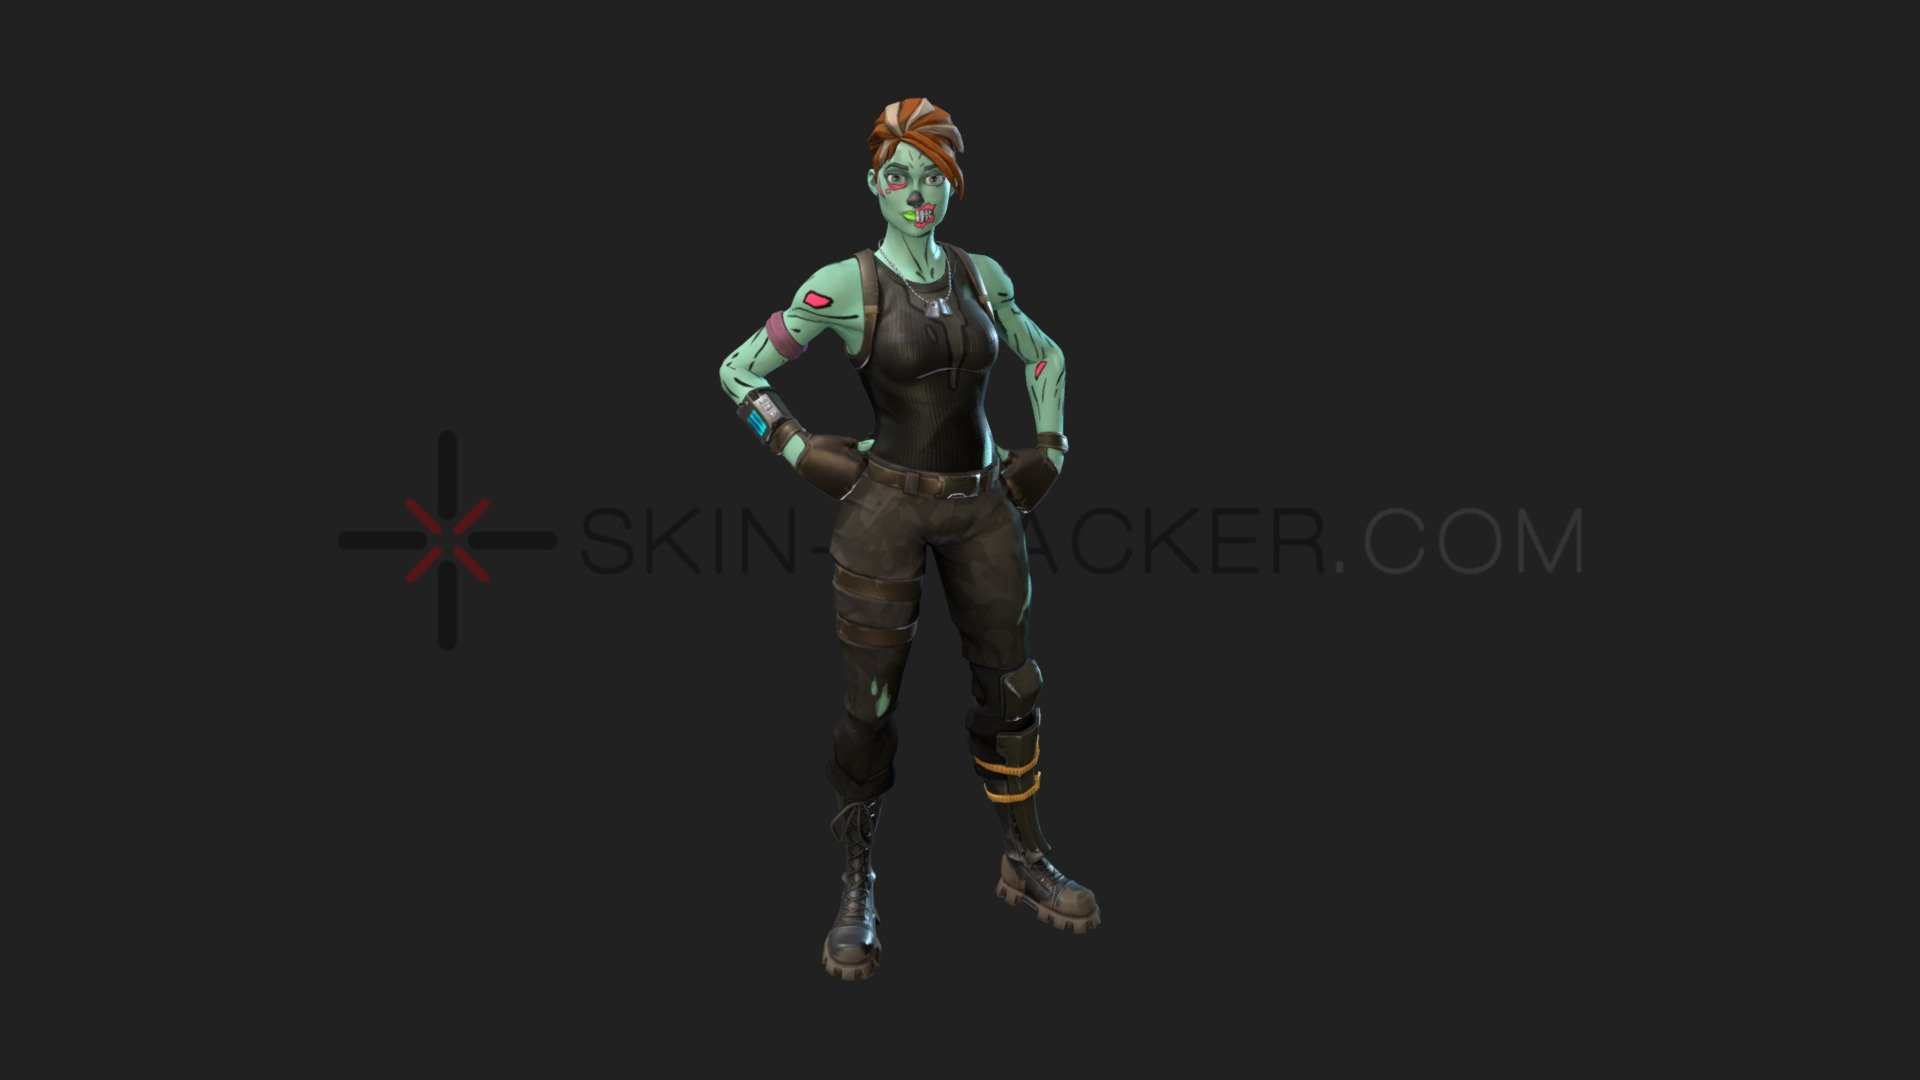 Fortnite Ghoul Trooper 3d Model By Skin Tracker